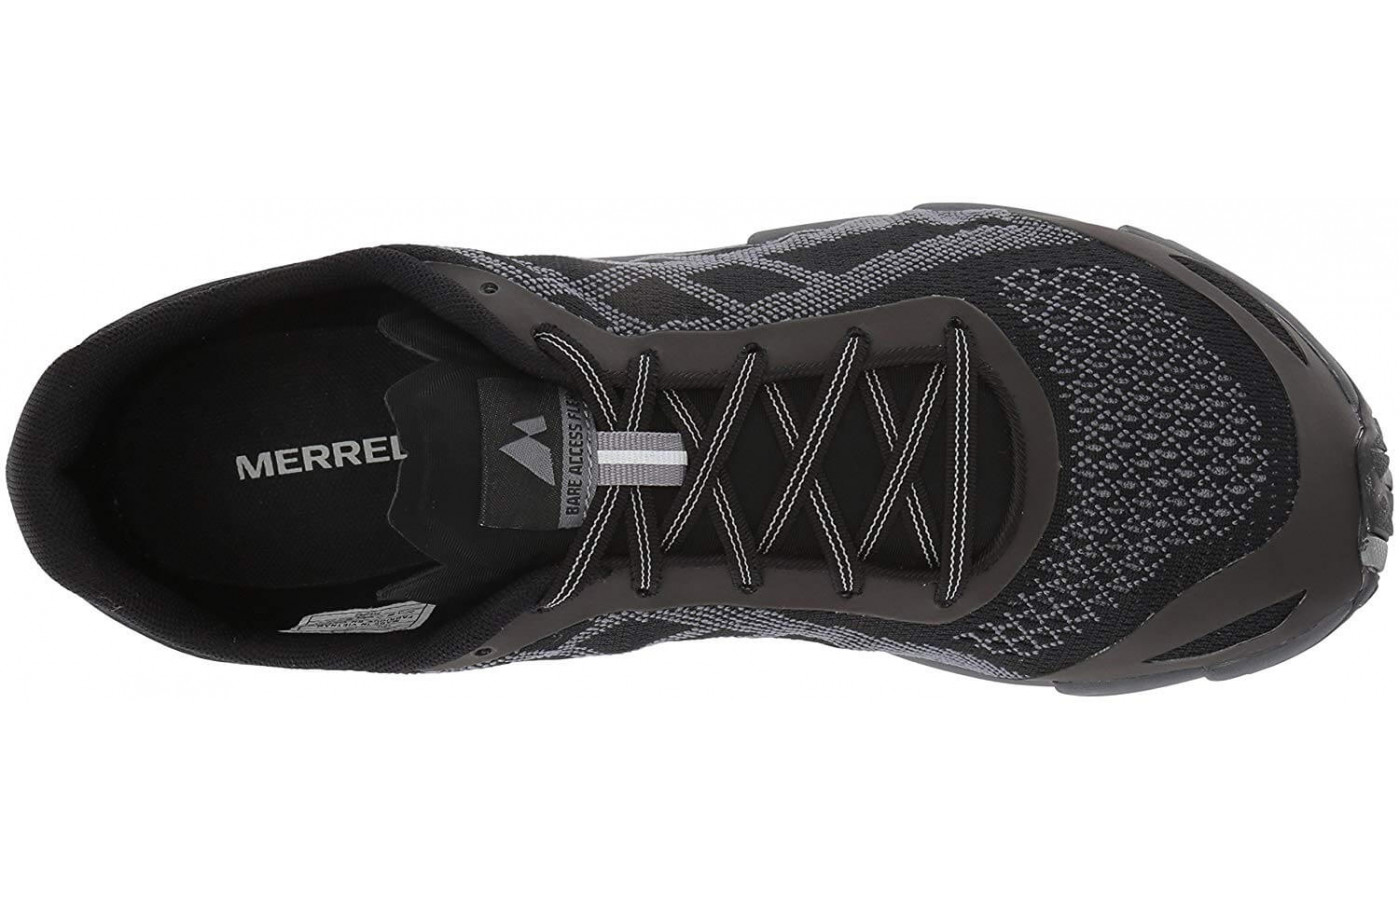 Merrell Bare Access Flex E-Mesh top